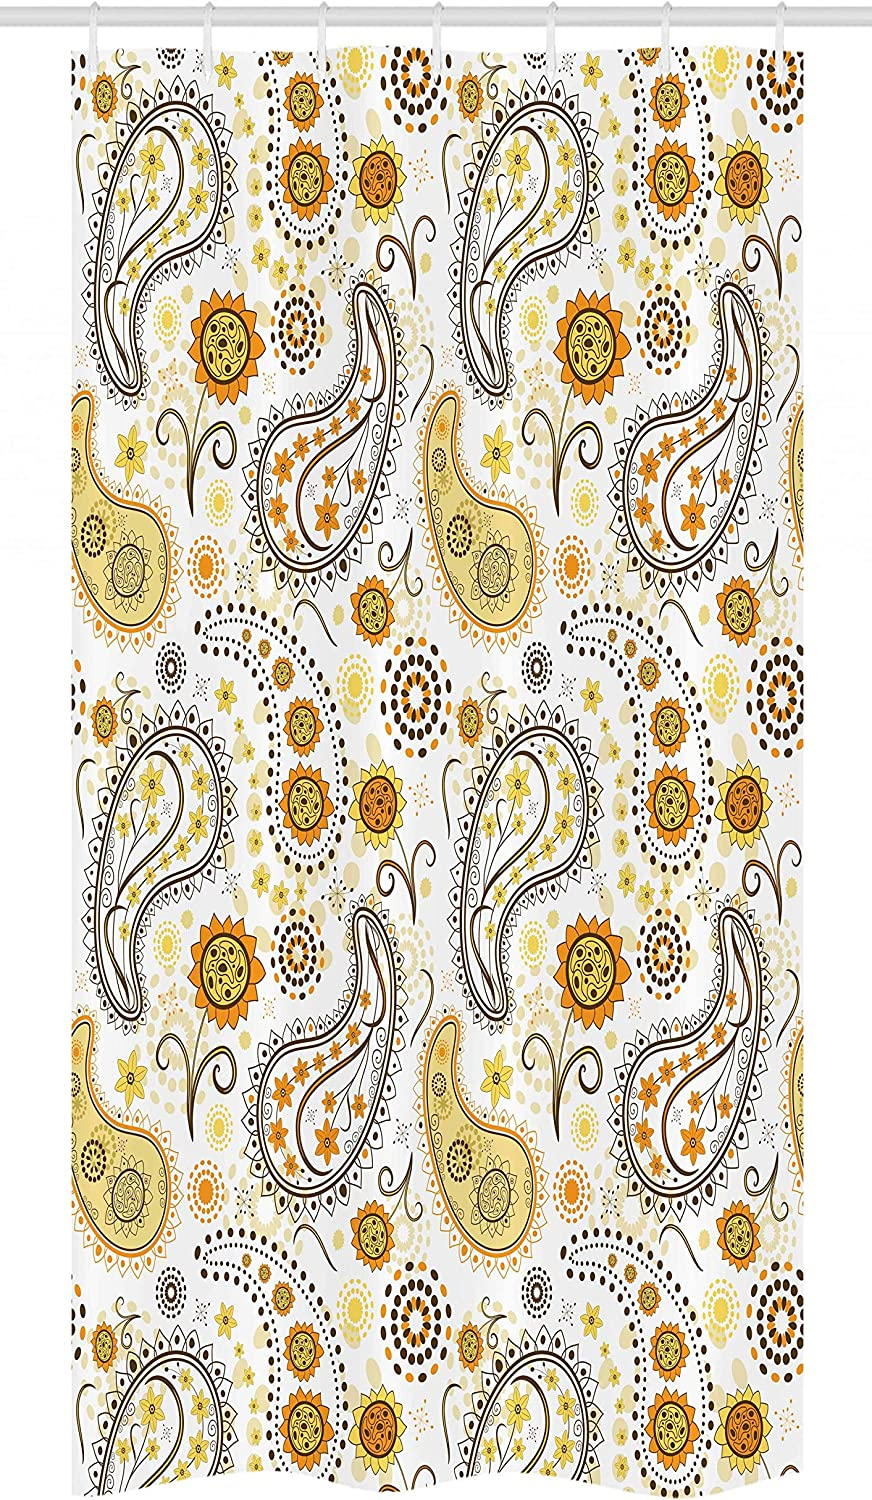 Ambesonne Sunflower Stall Shower Curtain, Floral Pattern with Sunflowers and Paisley Vintage Boho, Fabric Bathroom Decor Set with Hooks, 36